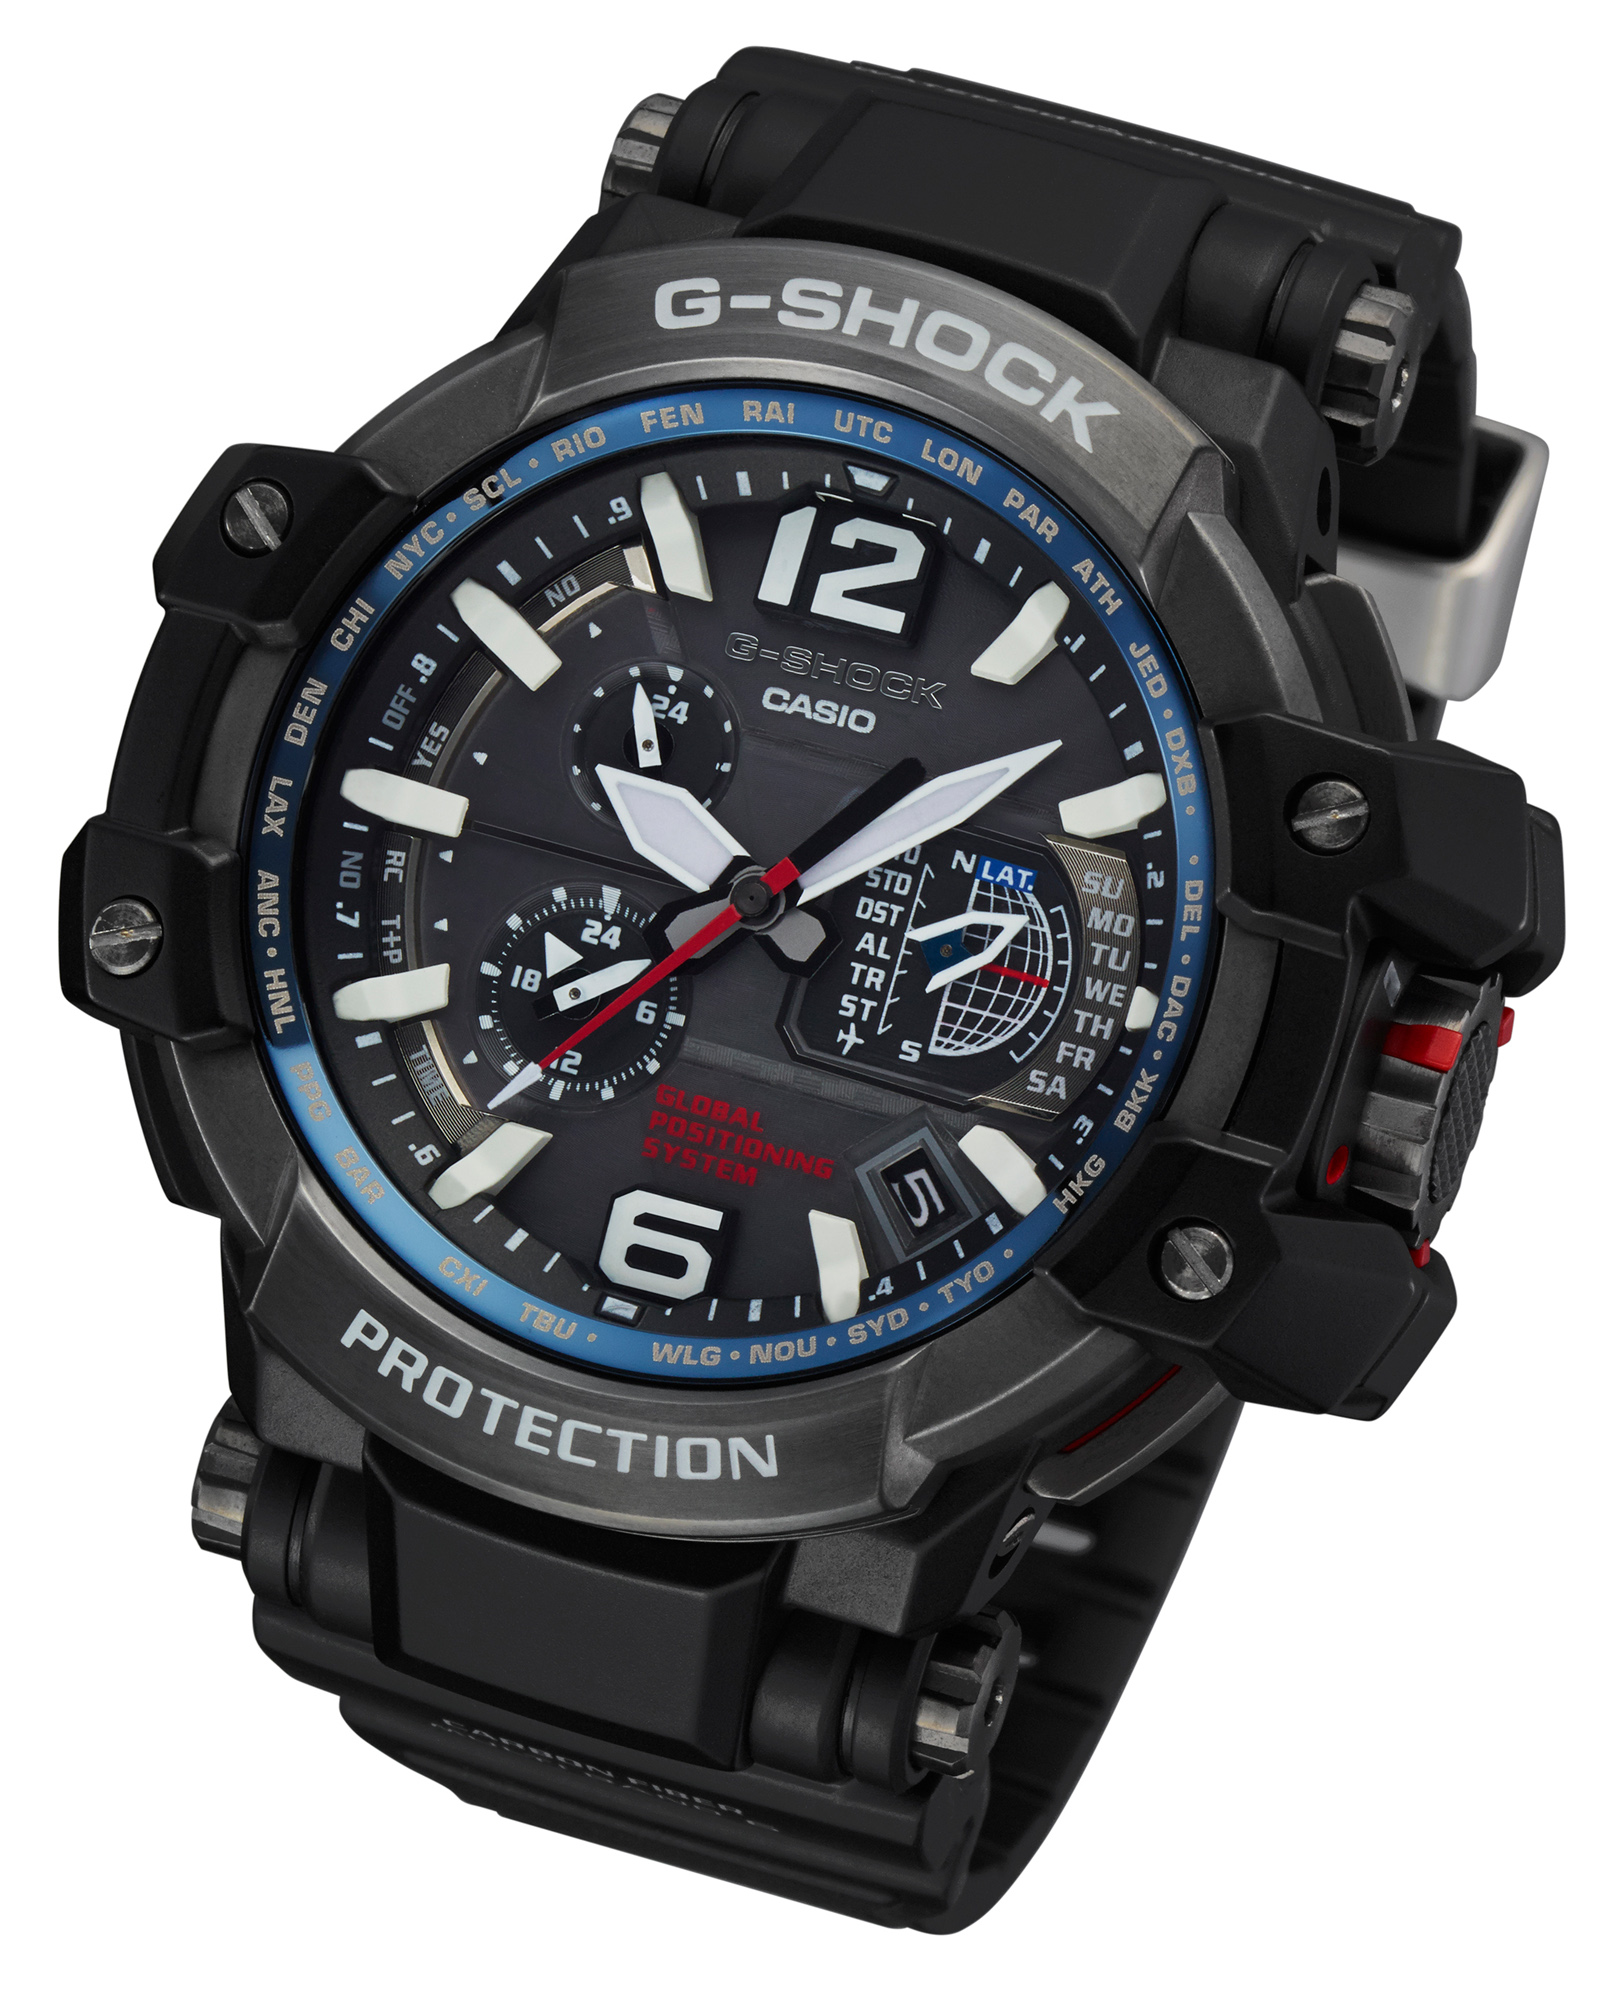 Casio G-Shock GPW-1000 GPS - Baselworld 2014